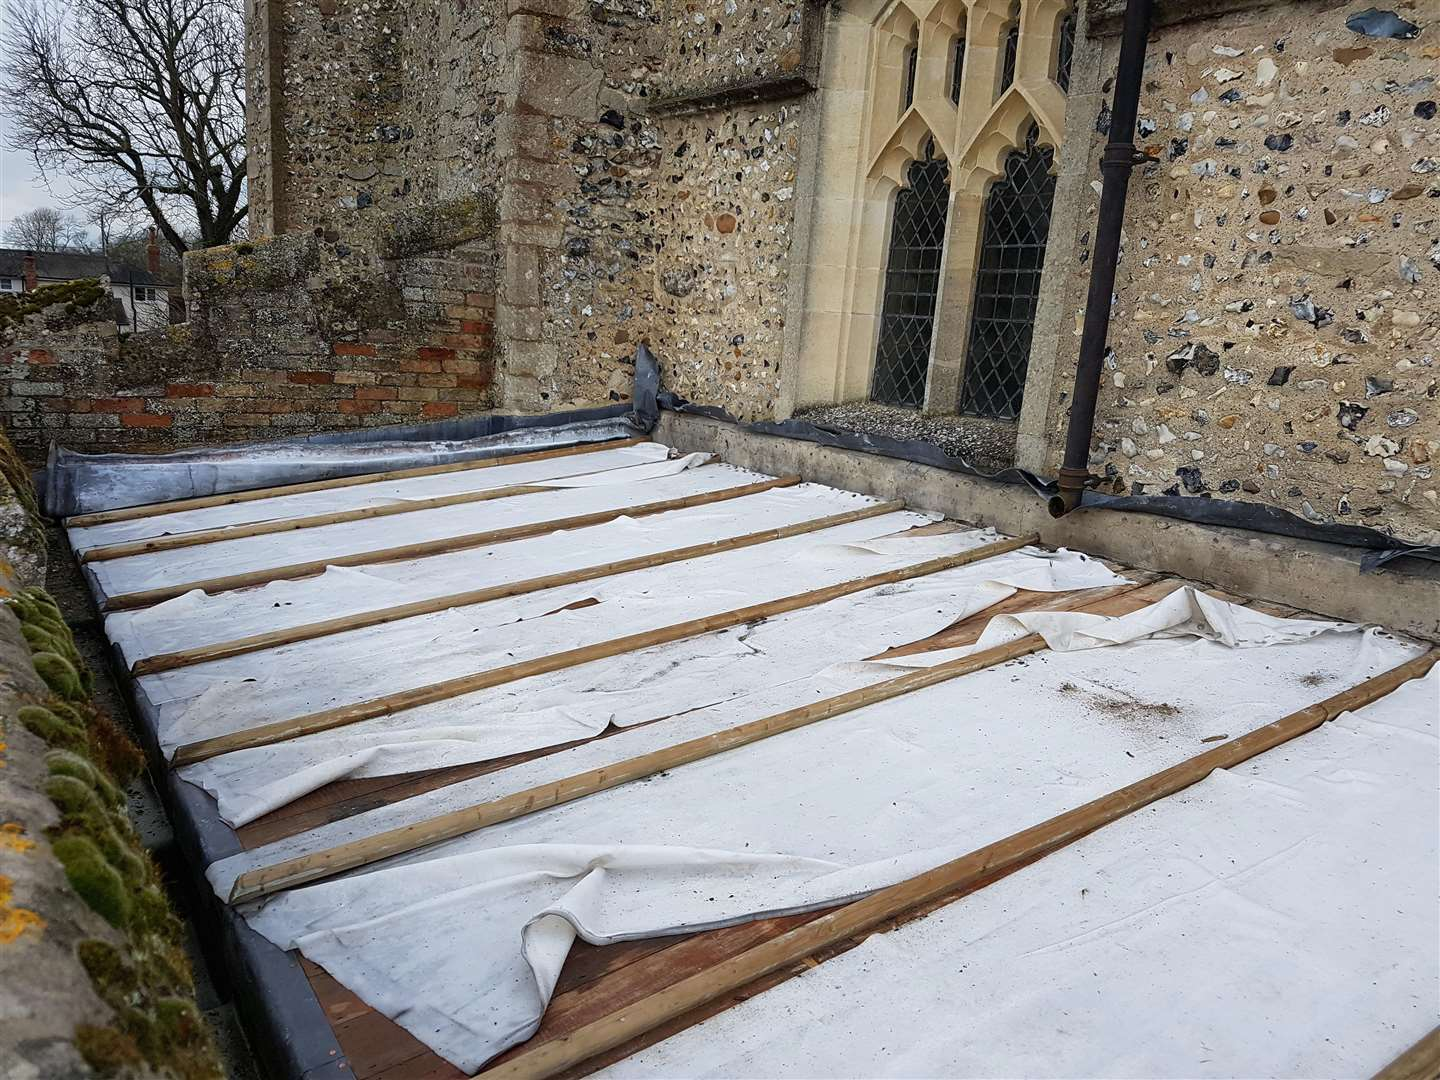 Desecrated: Plastic sheets replace the stolen lead to protect the interior of Wood Ditton Church from the elements.